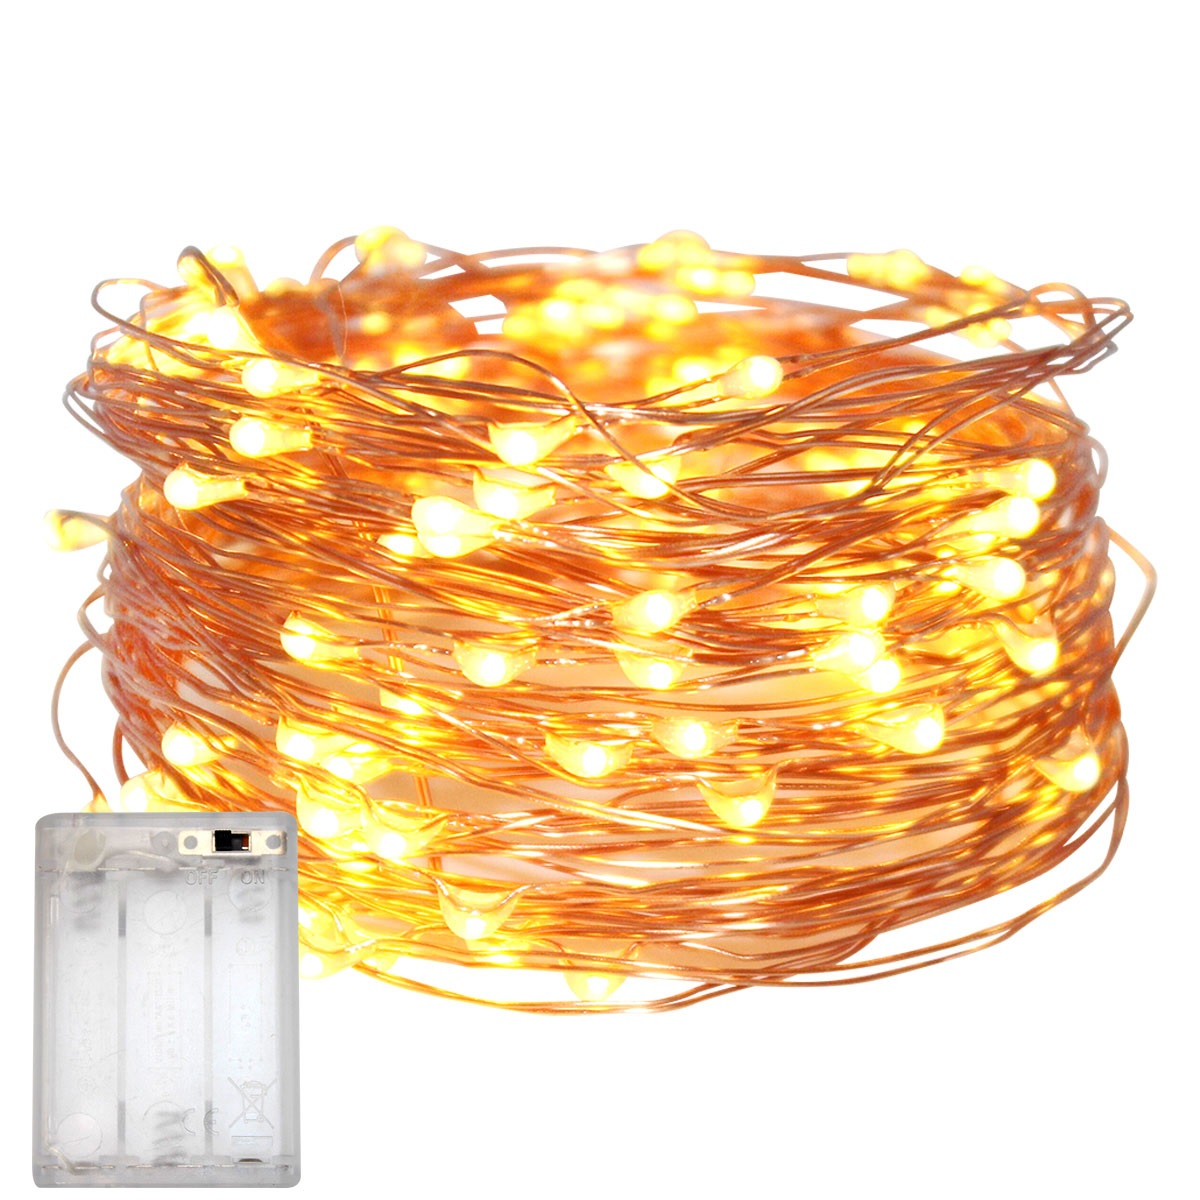 T Tersely Fairy Lights Battery Operated String Lights Waterproof 3xaa Battery Case Not Including Batteries Indoor Fairy String Lights For Christmas Tree Wedding Party Events Garden Spring Decoration Warm White Fairy Lights Battery